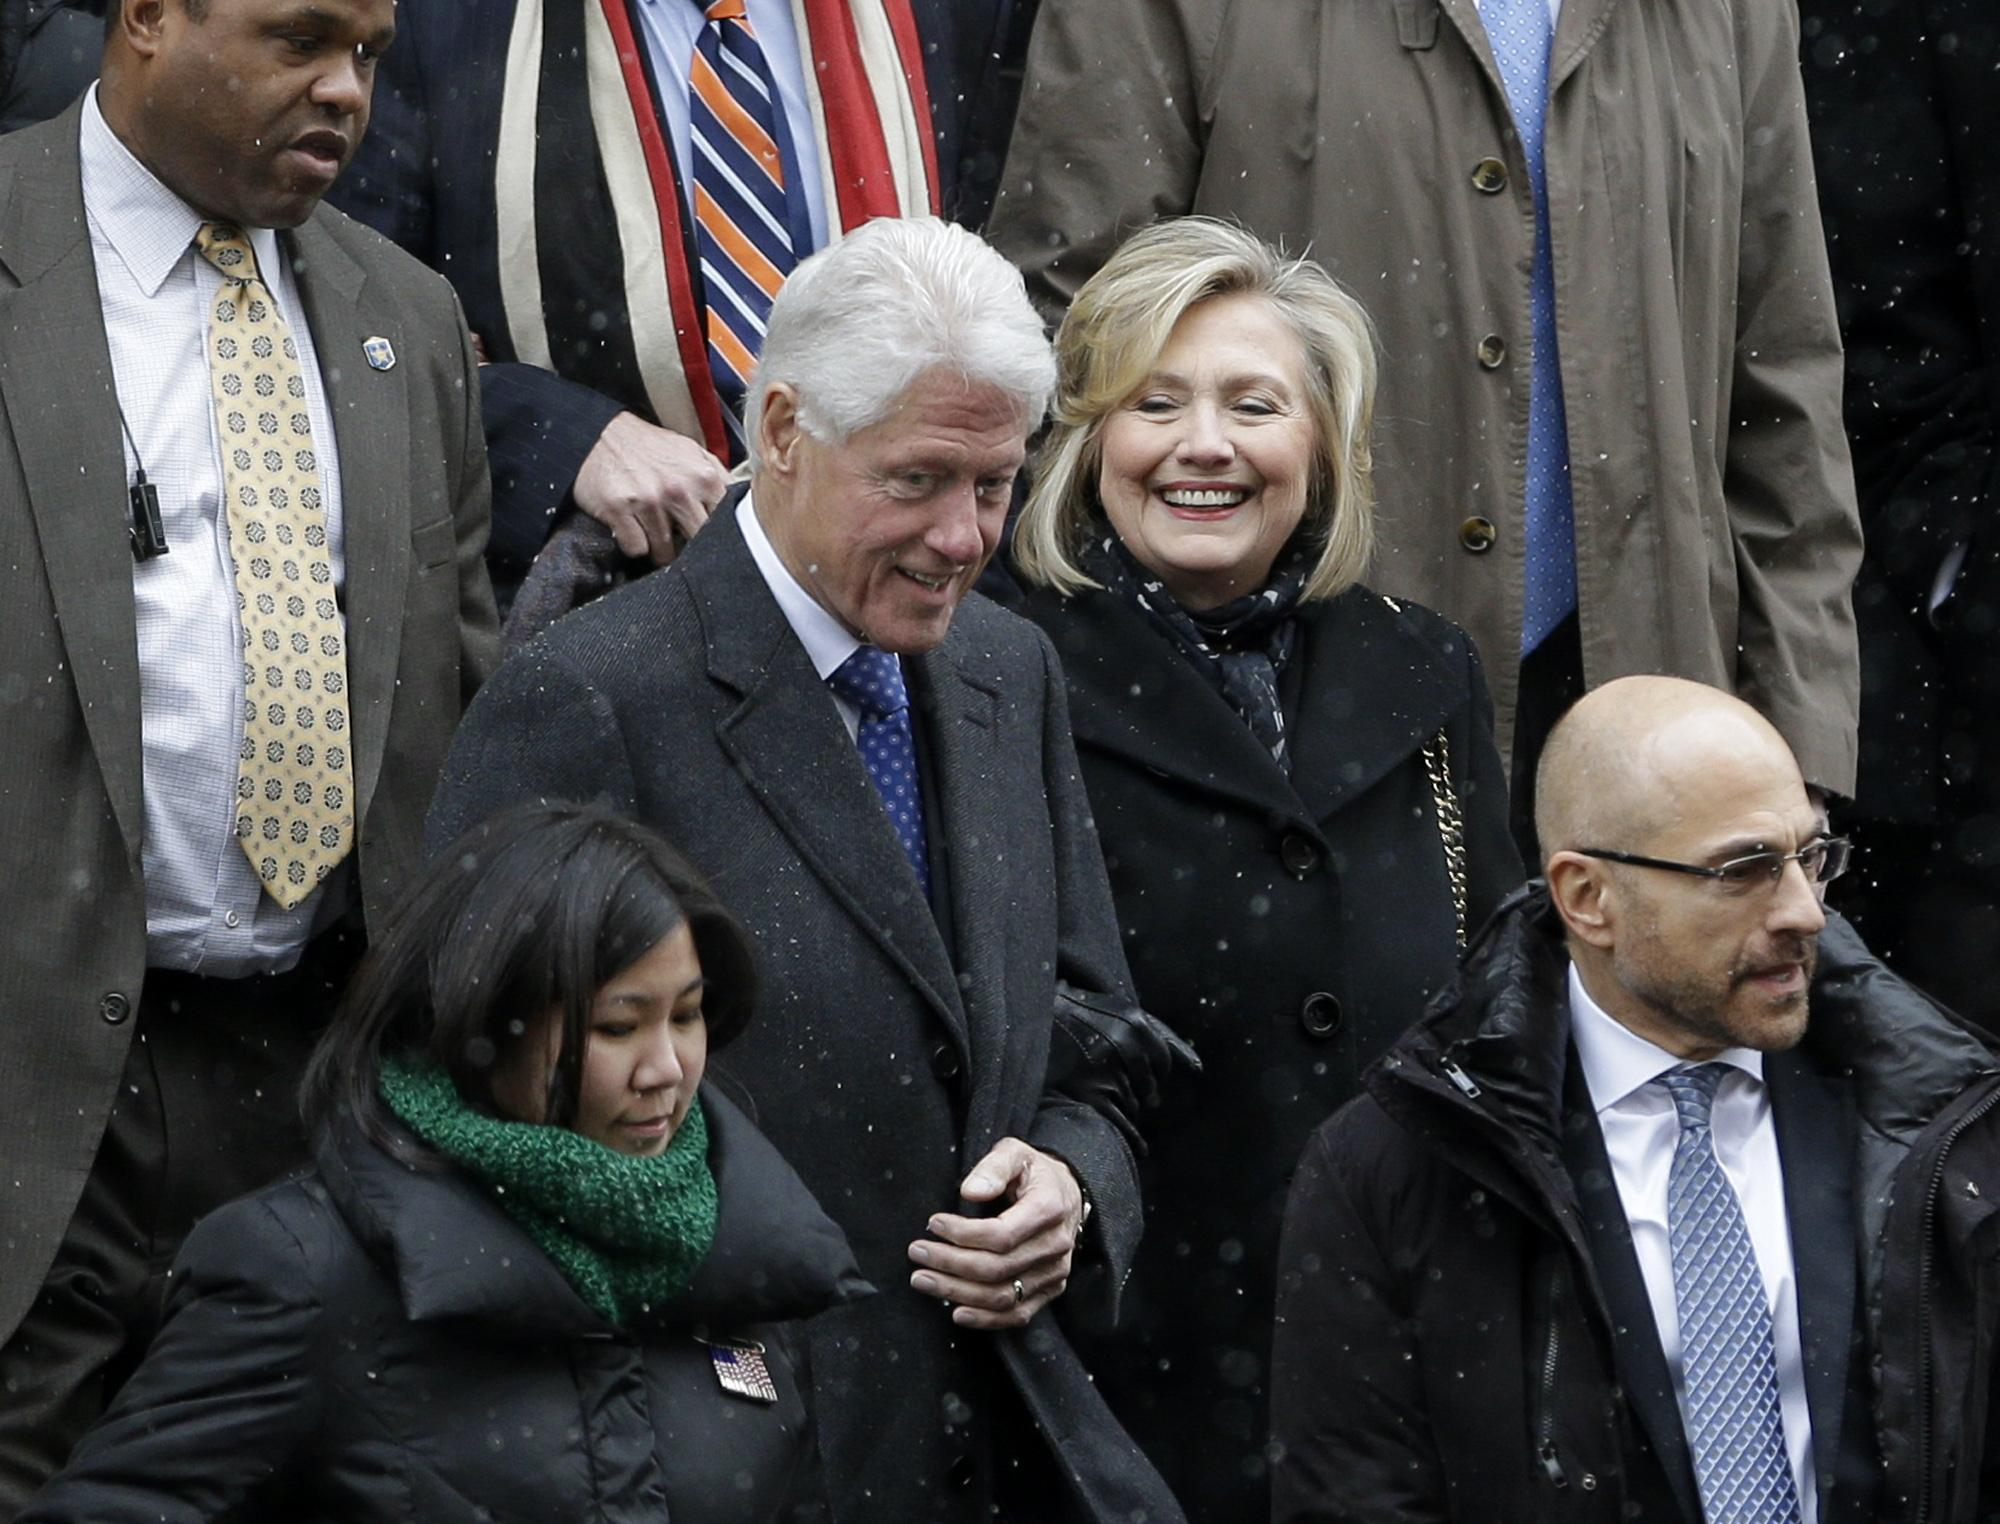 'Sex slave' claims Bill Clinton visited Epstein's 'orgy ...